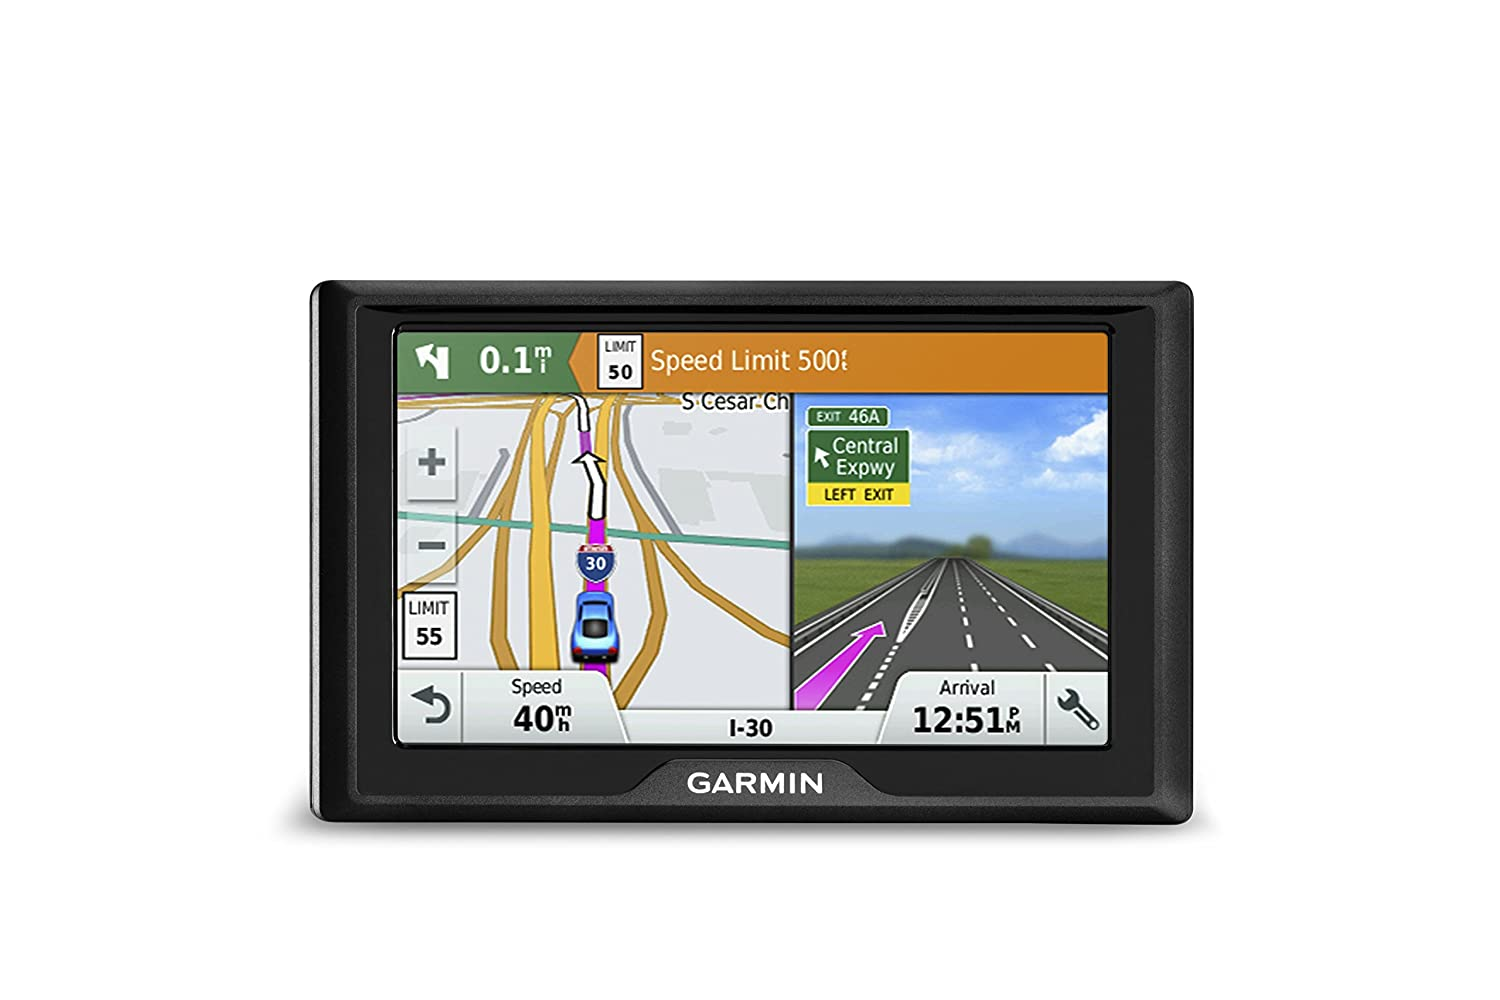 Garmin Drive 50 USA GPS Navigator System with Spoken Turn-By-Turn Directions, Direct Access, Driver Alerts, and Foursquare Data